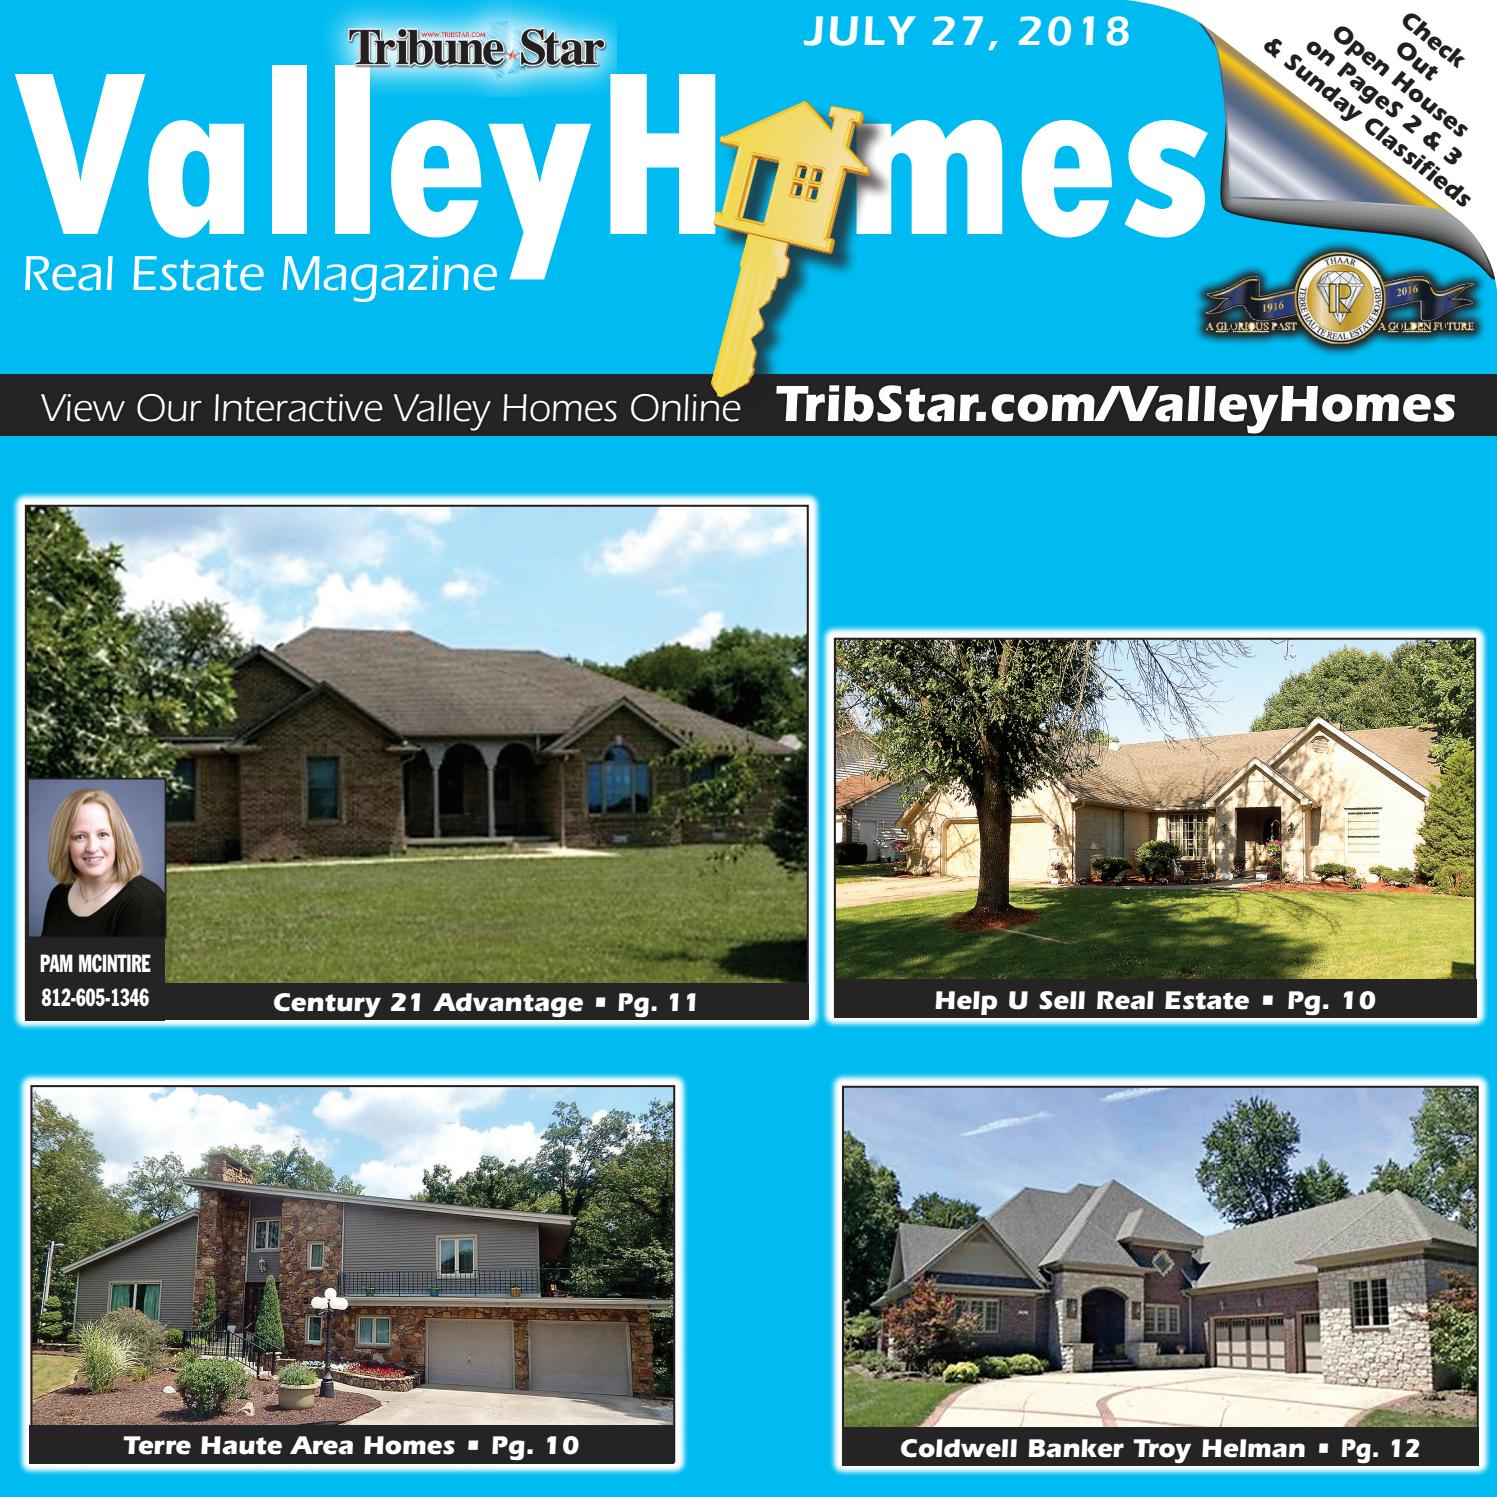 b97cfc12a80 Valley Homes July 27